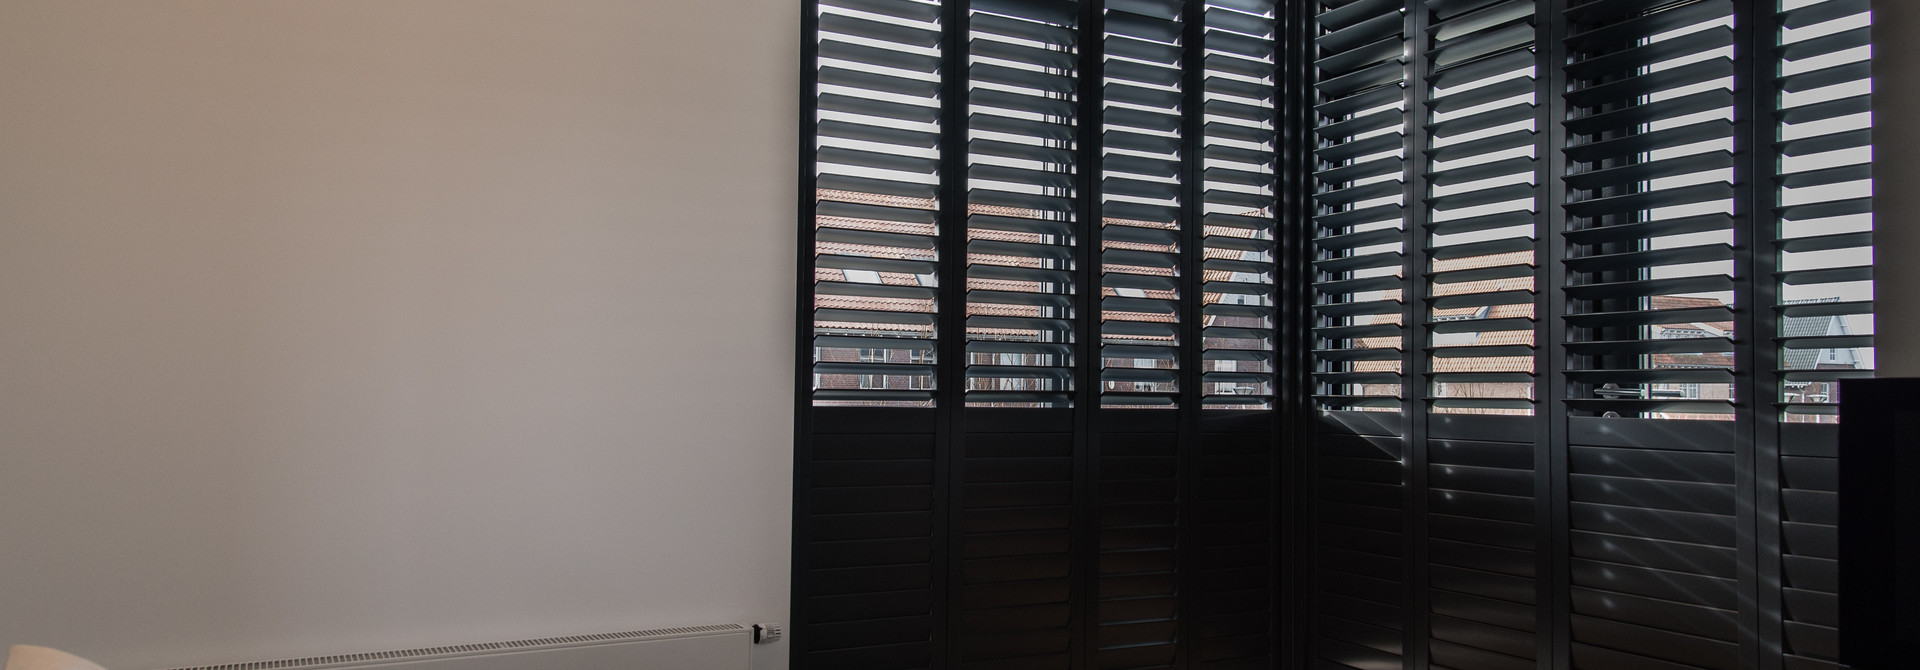 Blend Window Fashion Shutters